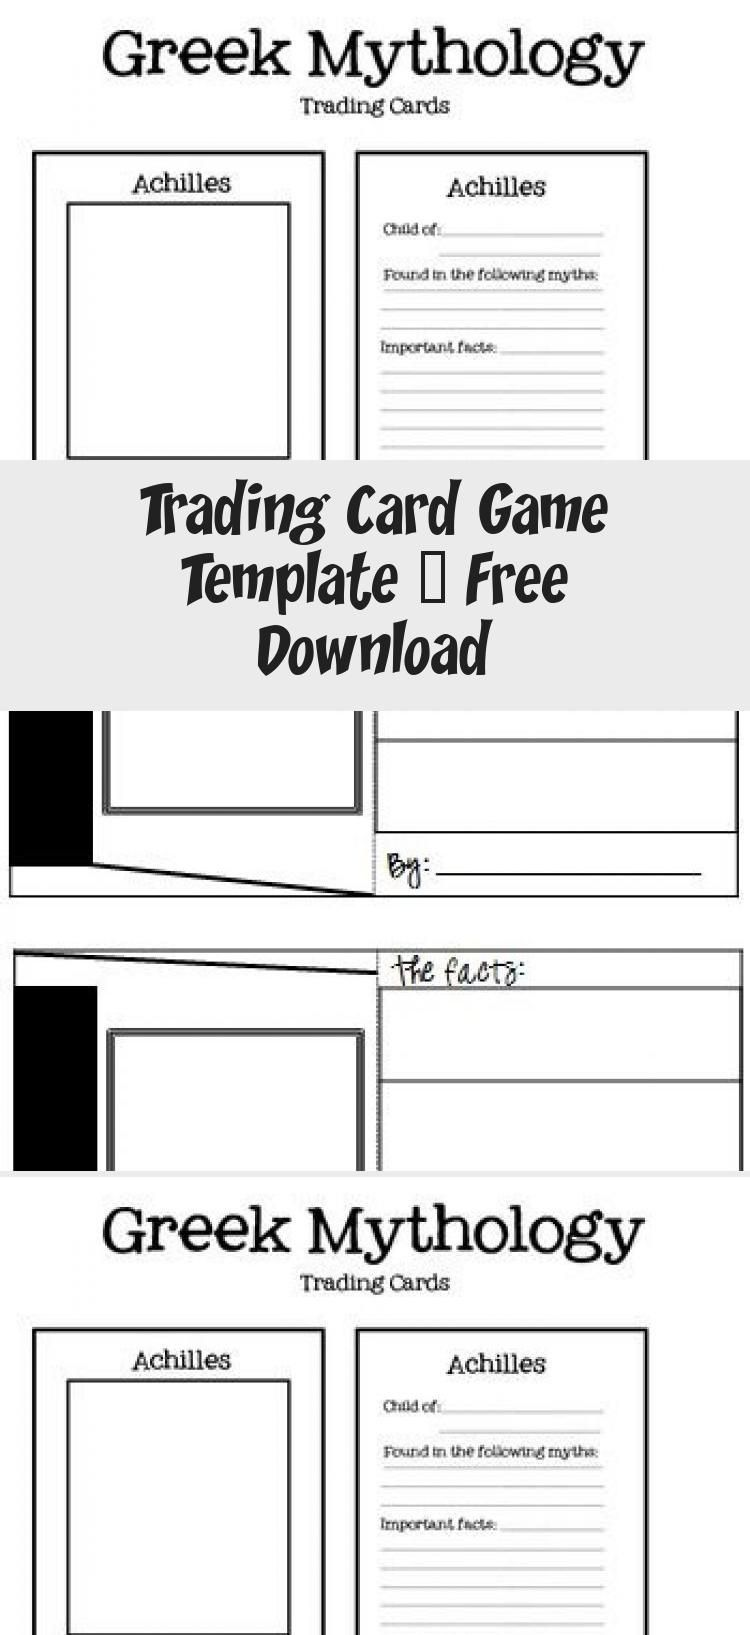 Trading Card Game Template Free Download Birthdaycardsonline Trading Cards Game Card Games Trading Card Template